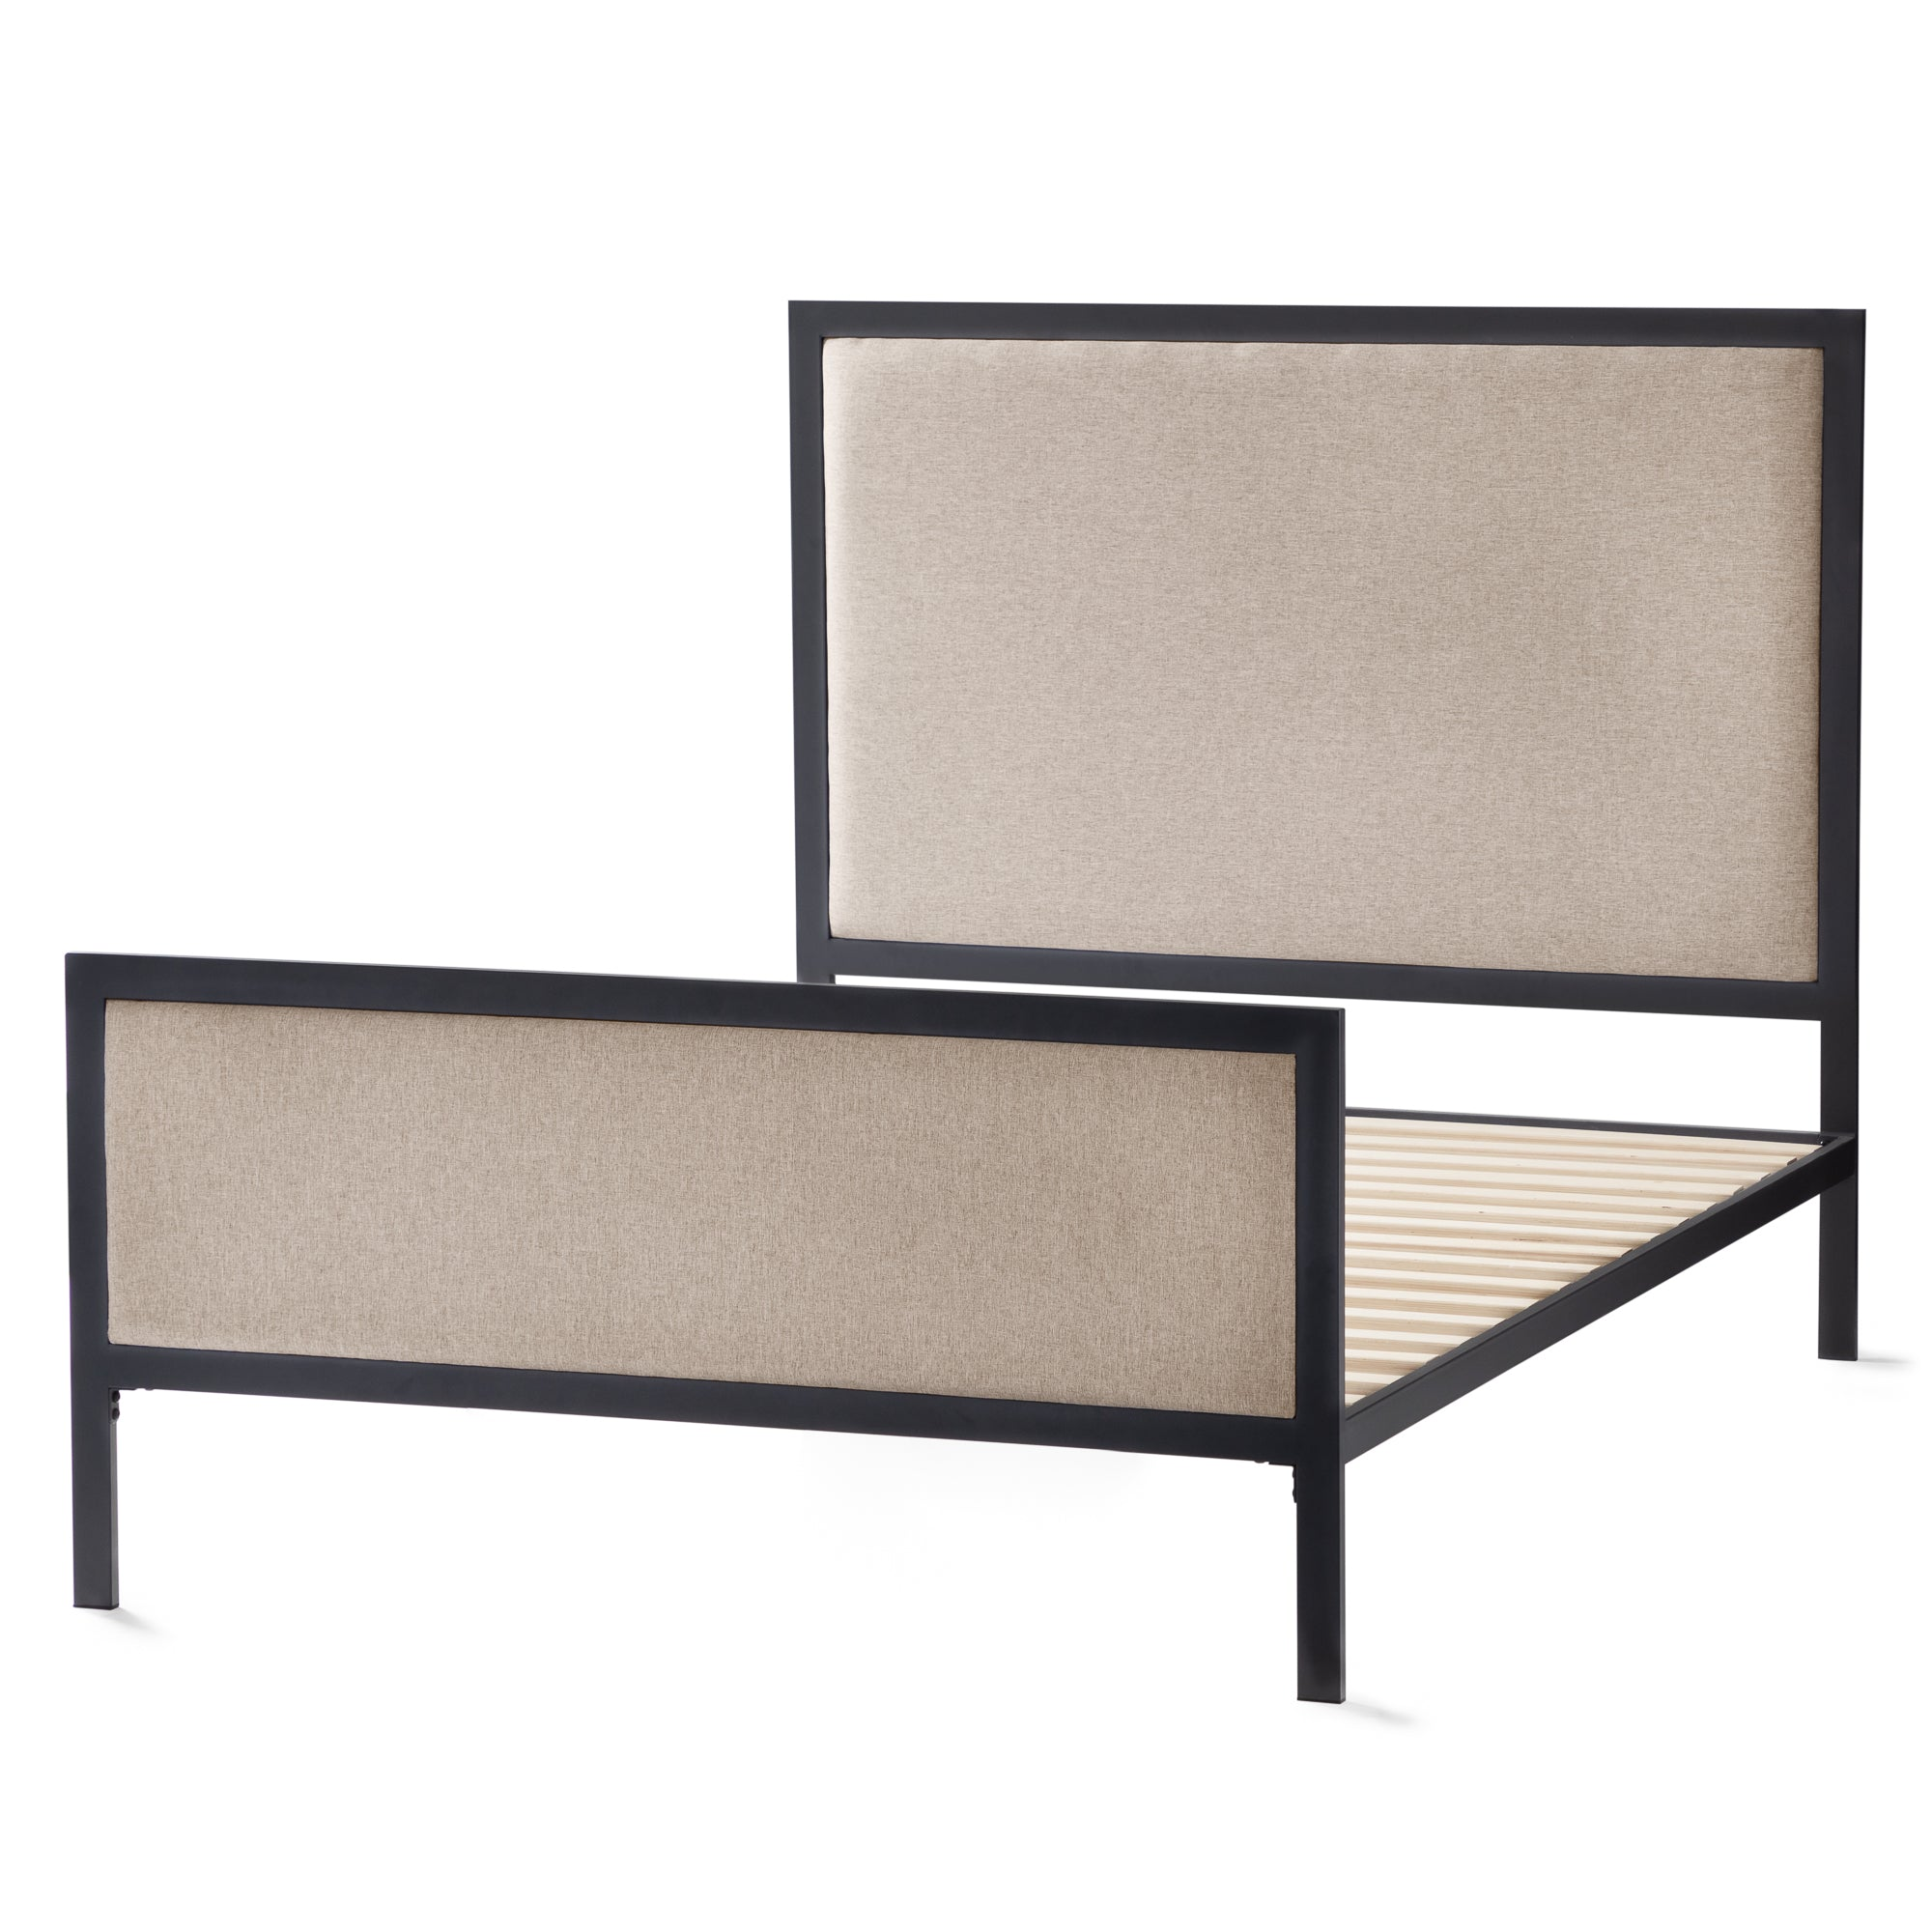 Designer Clarke Bed King Desert - Yogasleep by Malouf